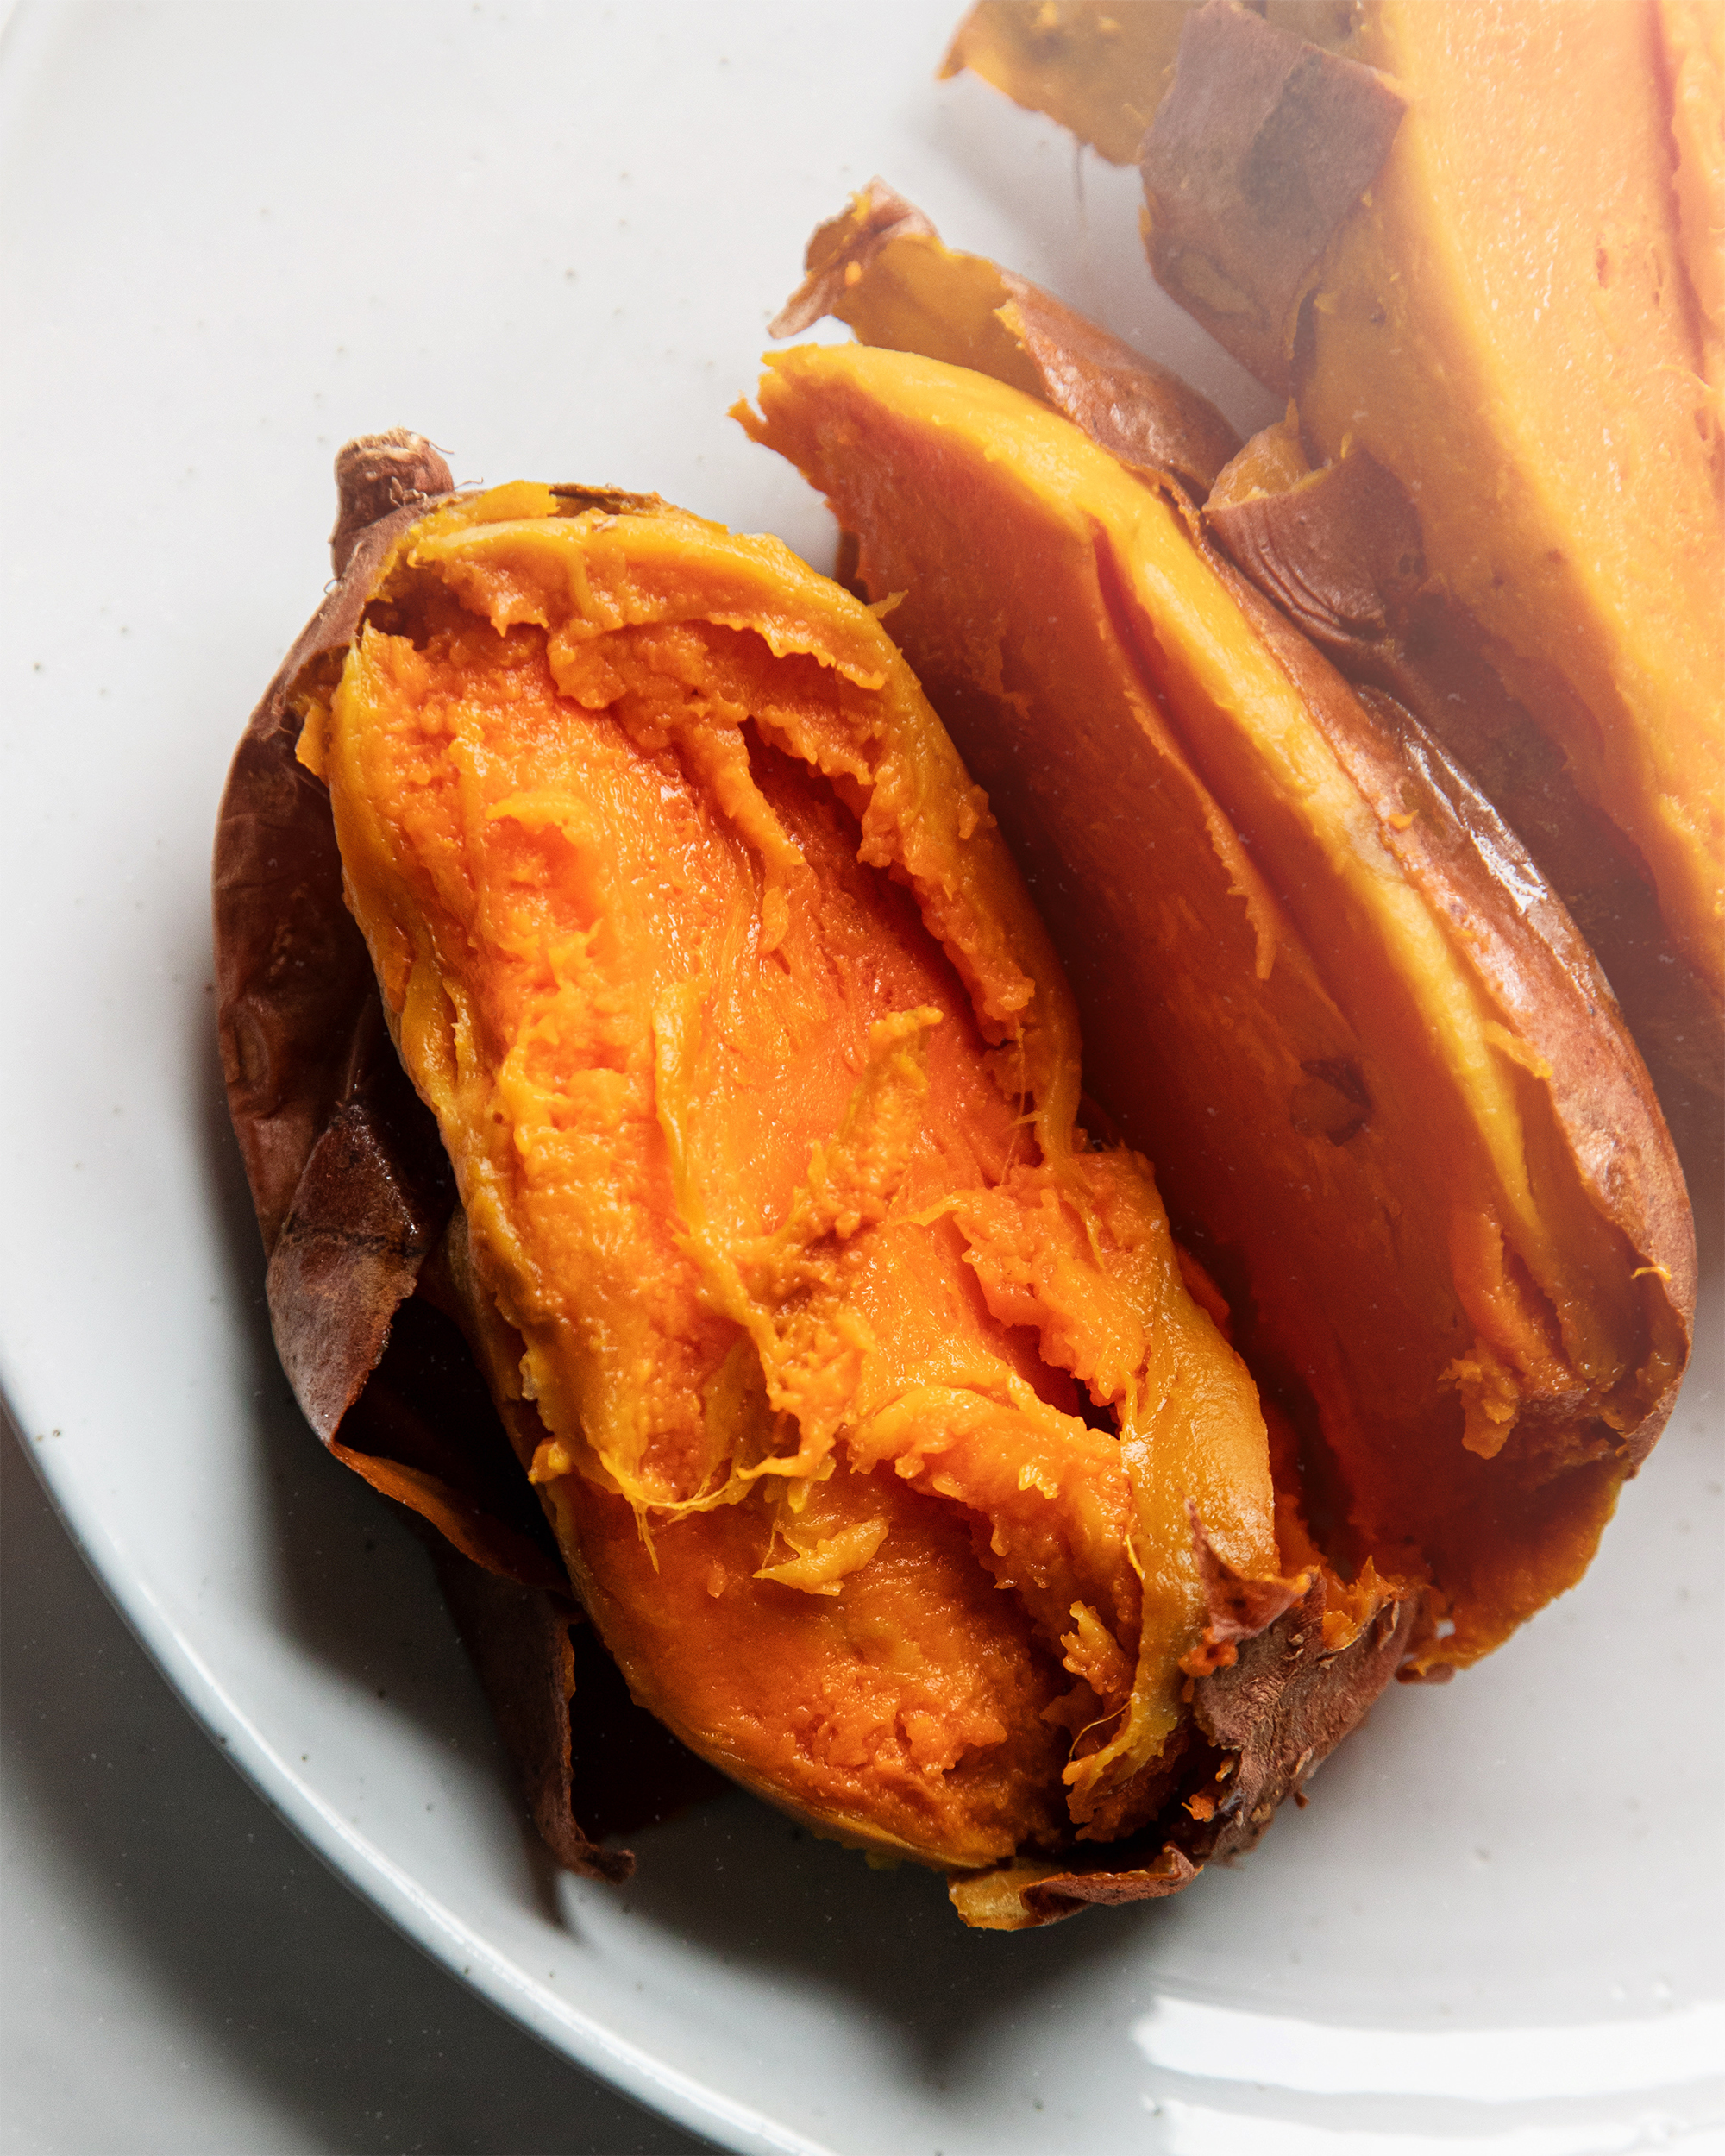 An up close, overhead shot of a split open baked sweet potato on a white plate.